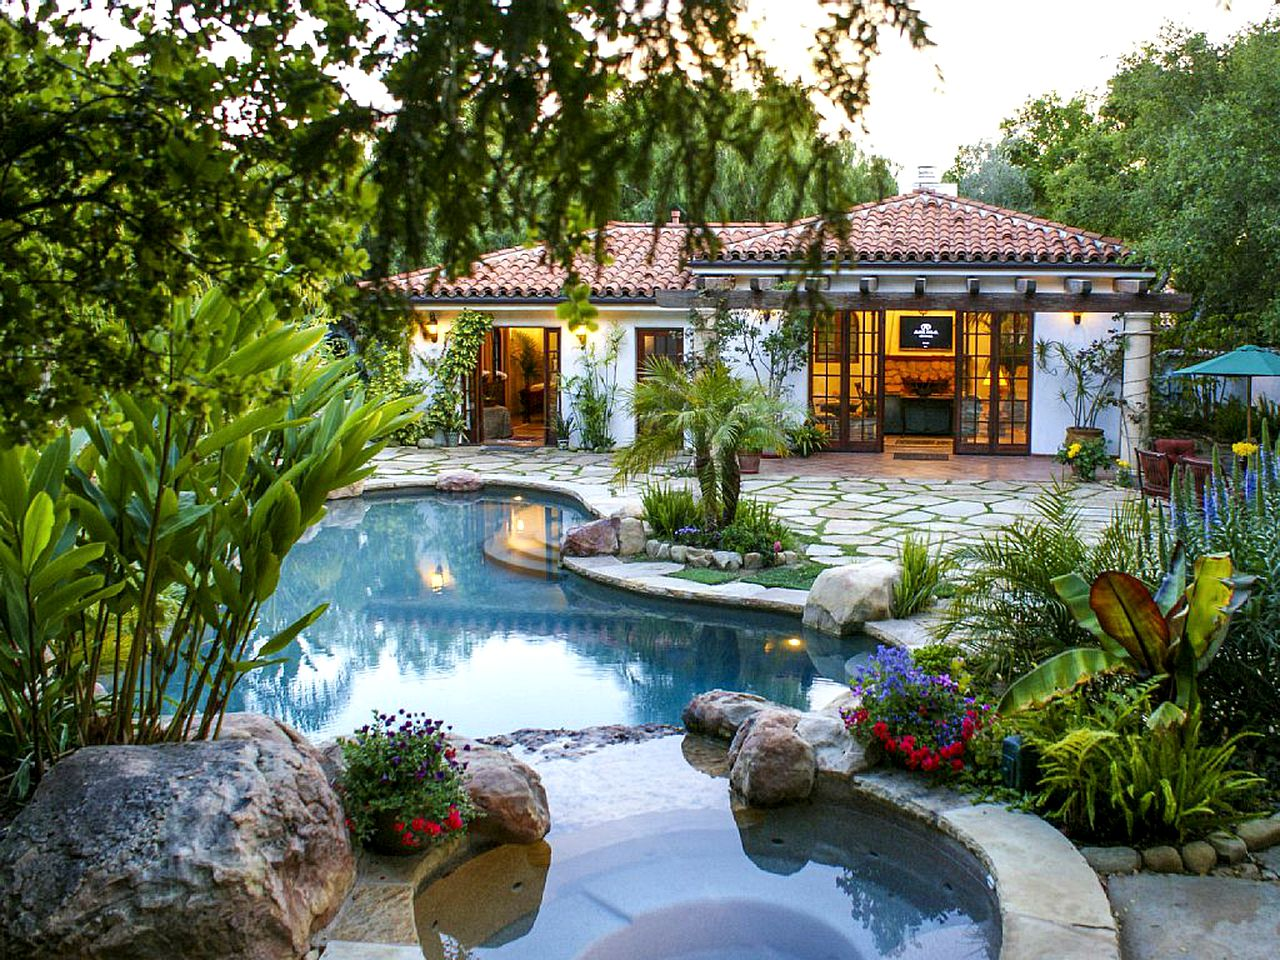 Vacation rental with a private pool and garden in the pack in Santa Barbara, California.